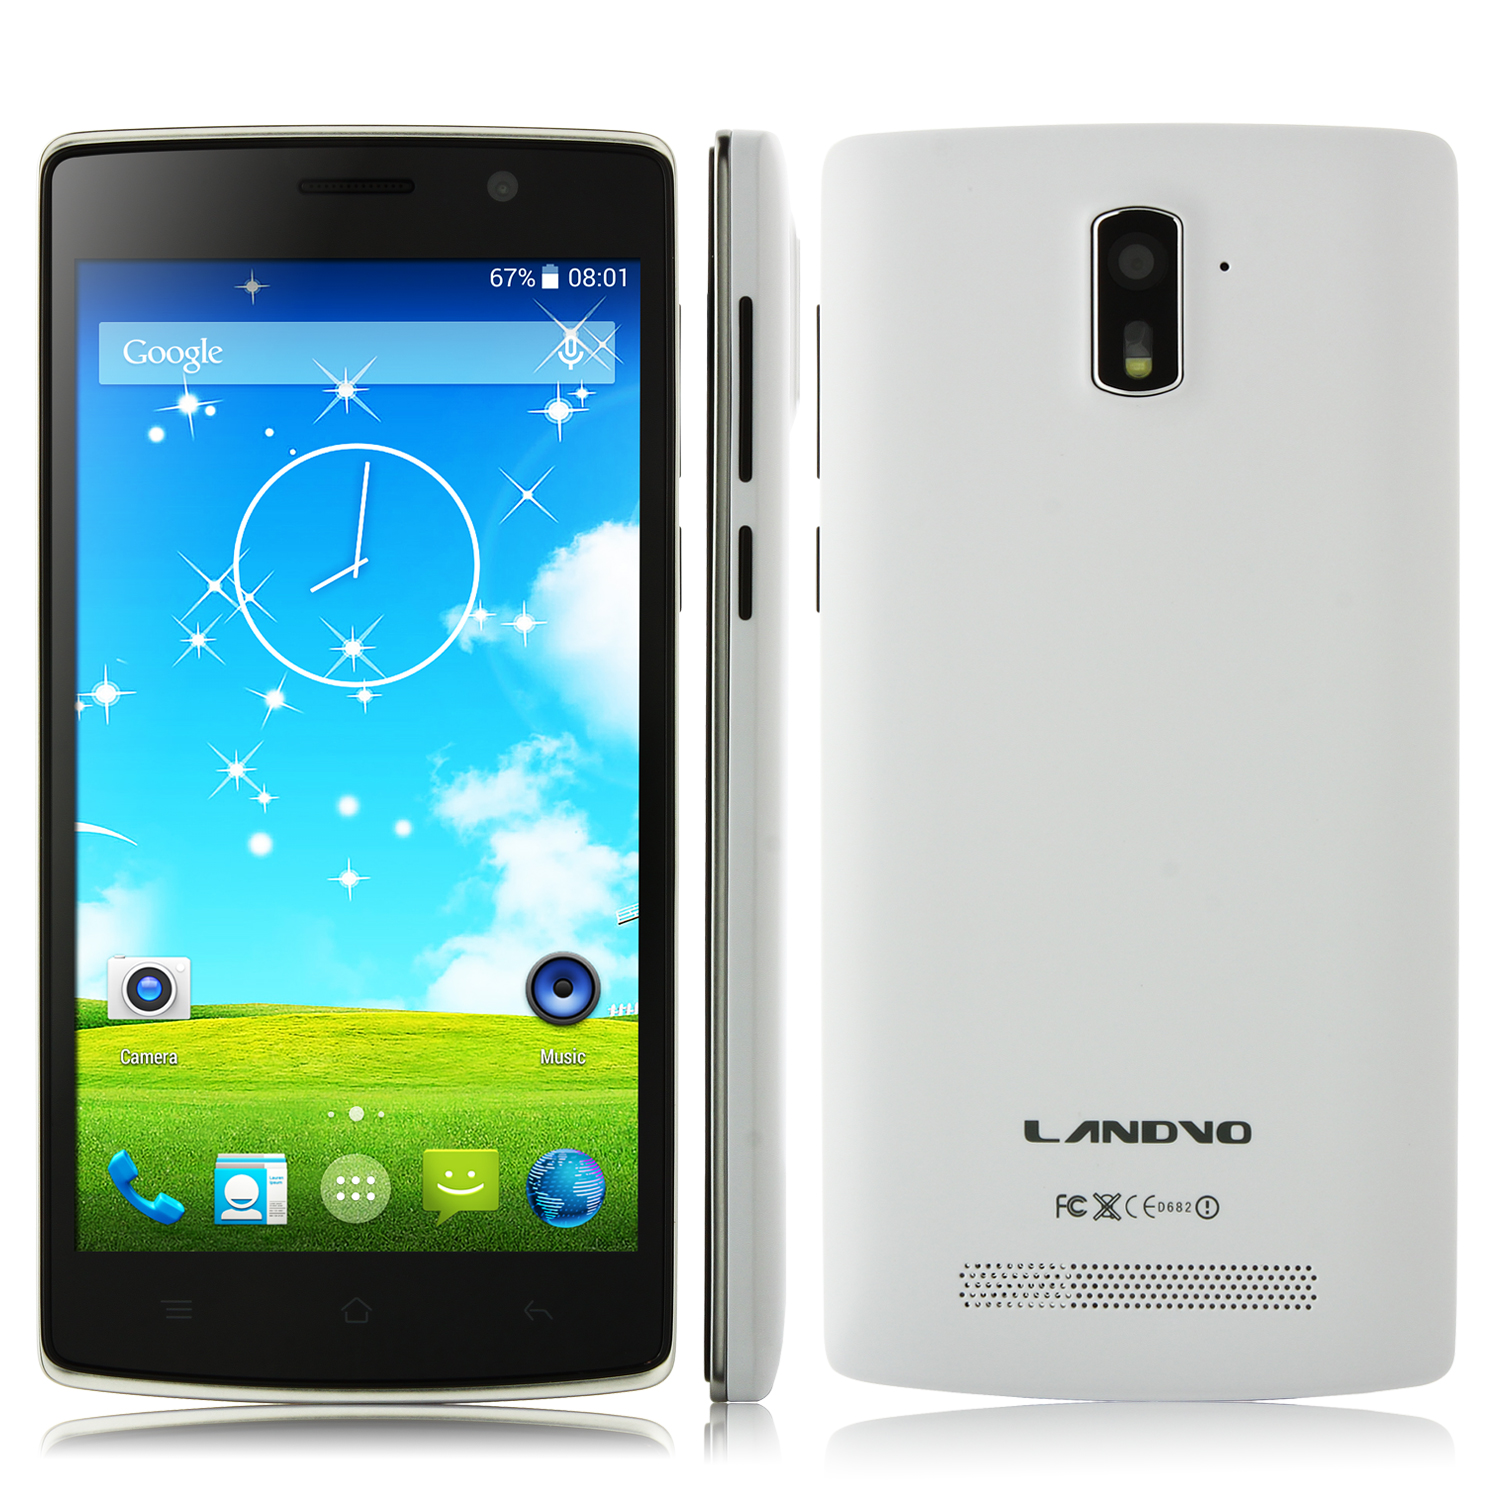 LANDVO L200S Smartphone 4G LTE Android 4.4 MTK6582 Quad Core 5.0 Inch HD Screen White